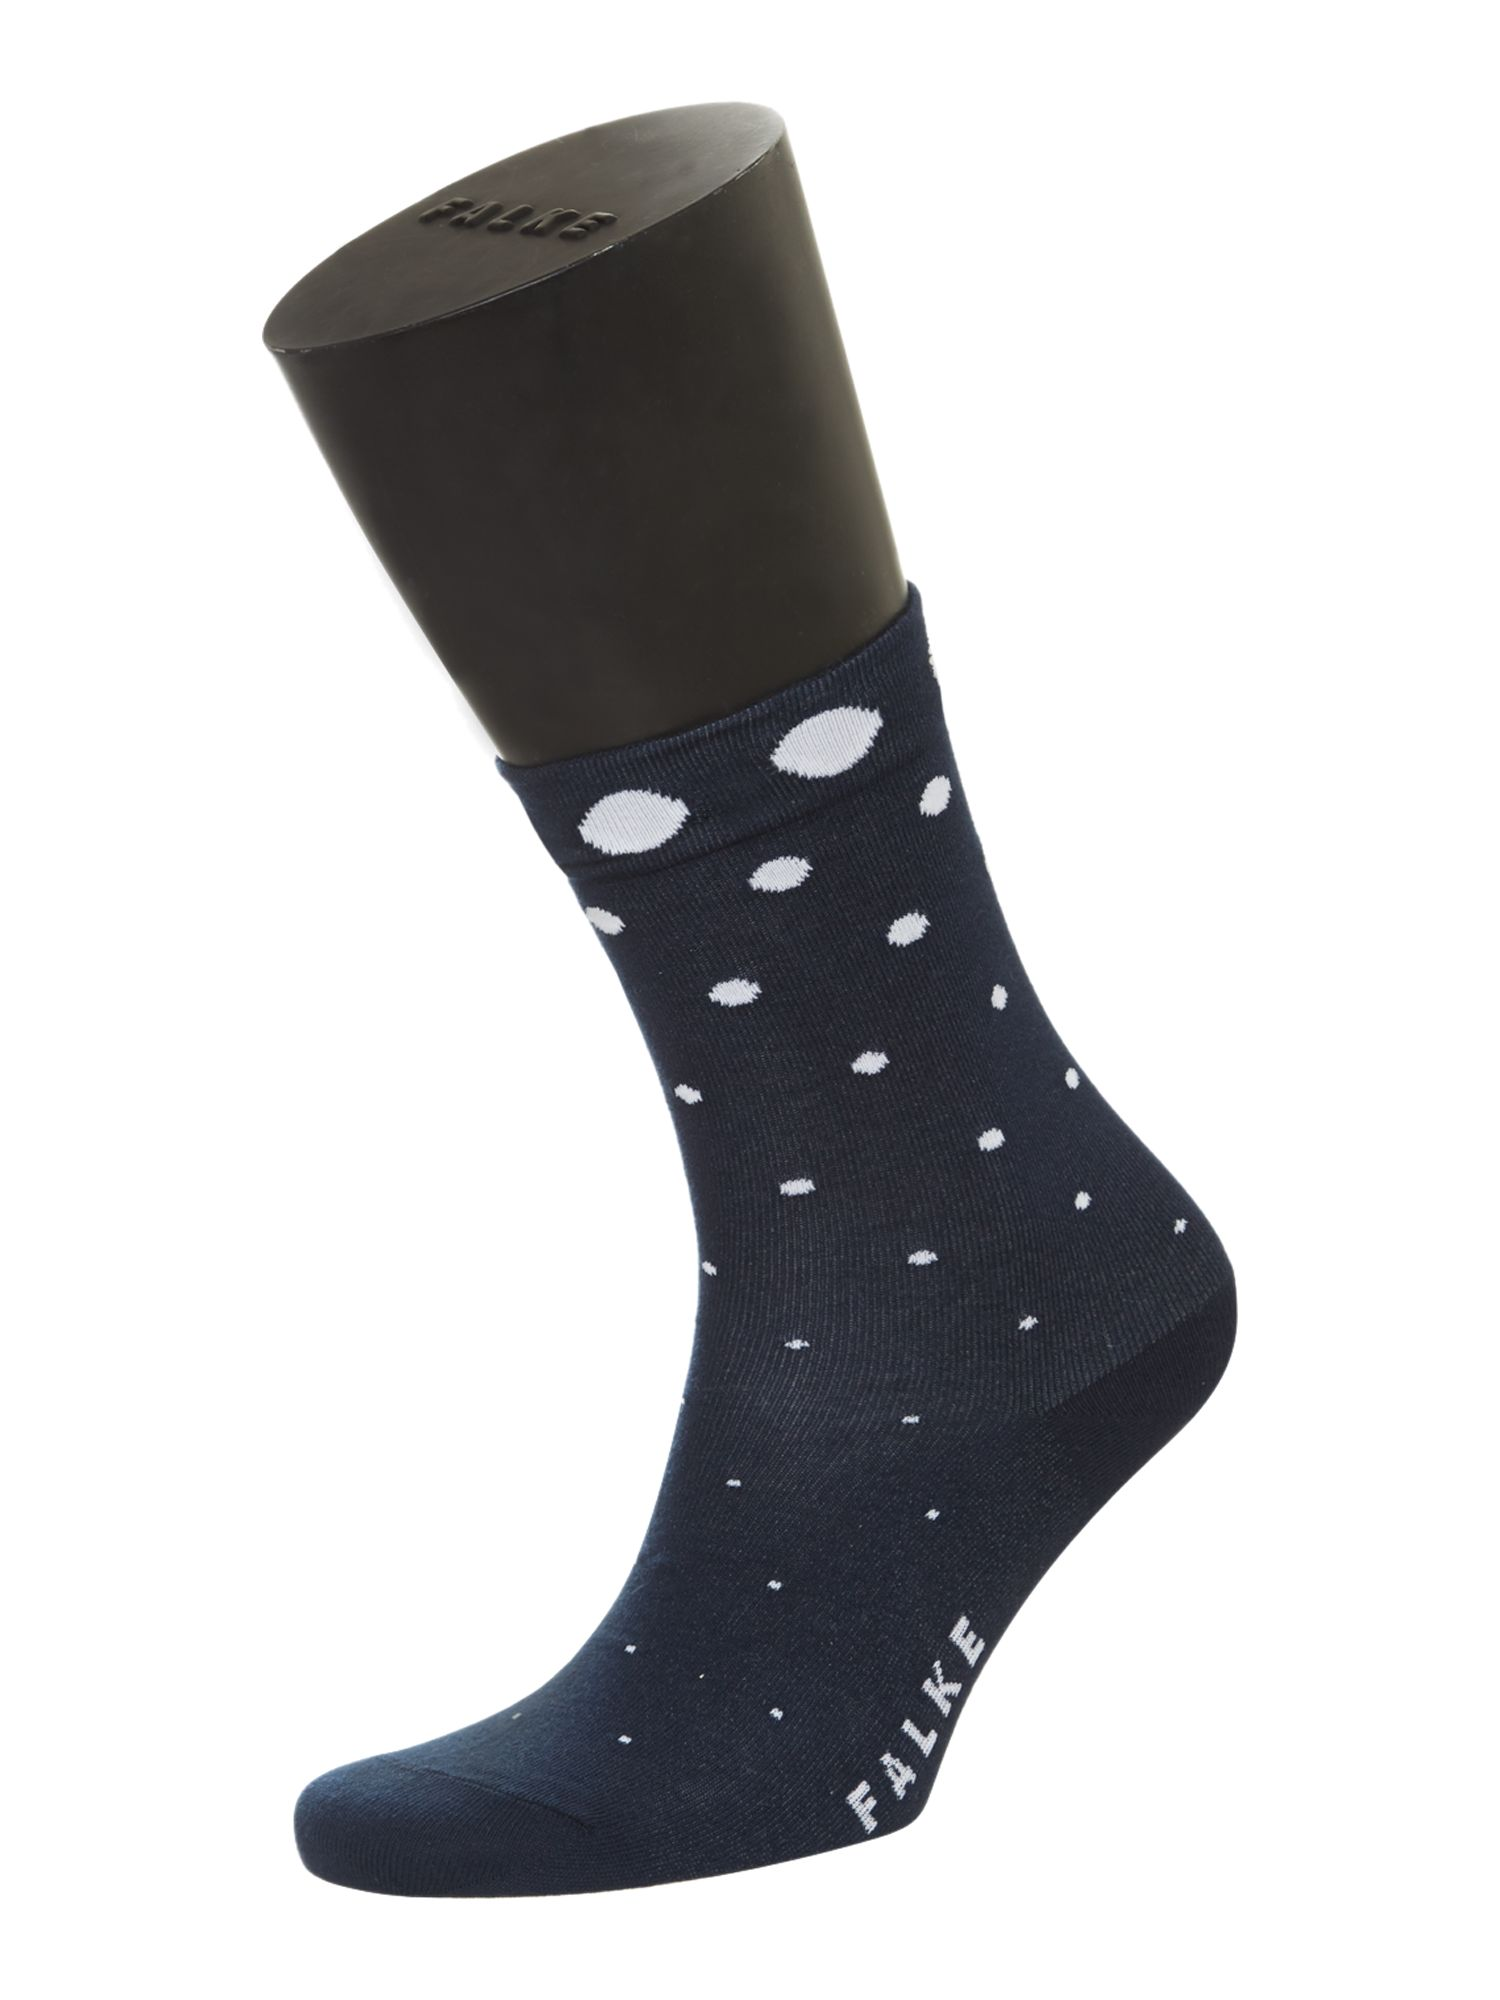 Degradee dots ankle socks